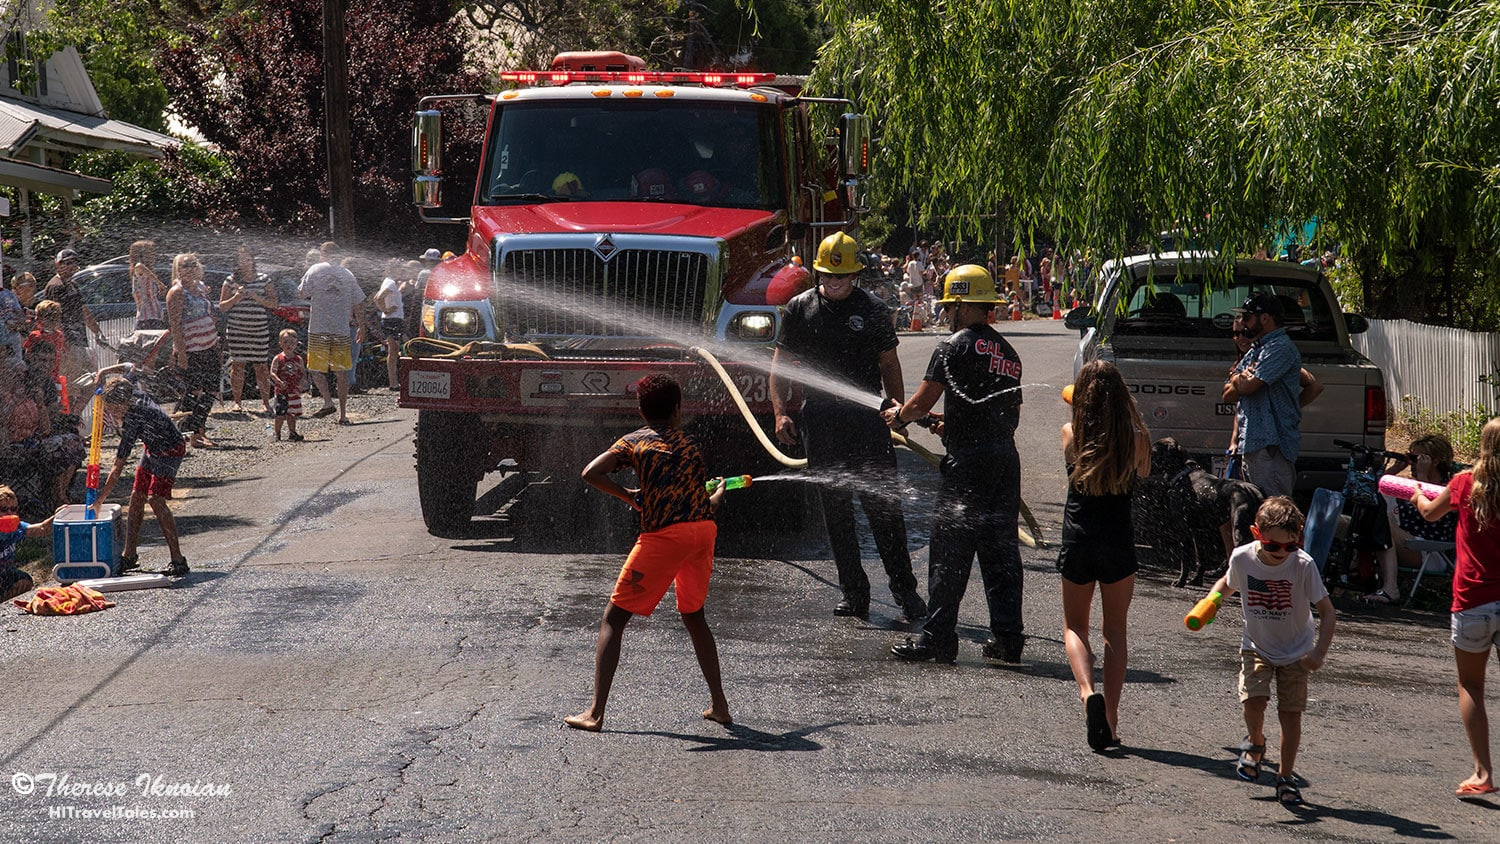 The fire fighters were dripping from their eyelashes and toes…and loving it.